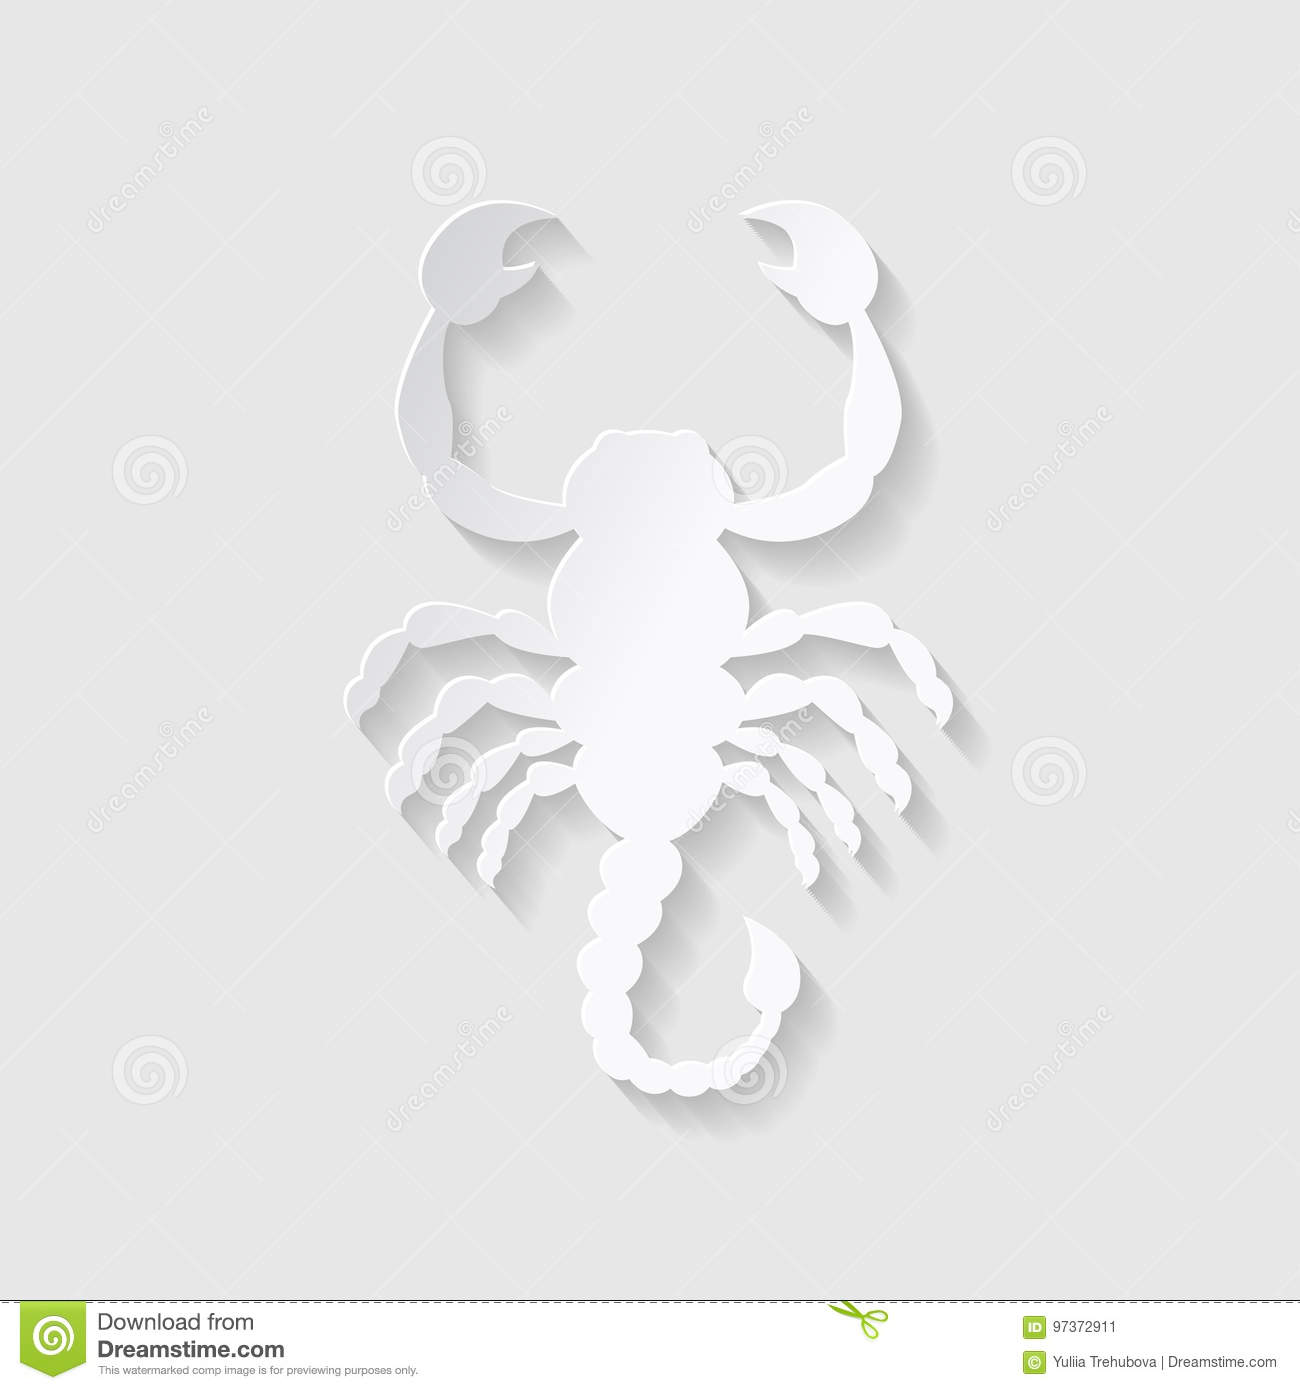 7bb20a04a52c4 Horoscope Paper Cut Style. Concept For Scorpio. Vector Illustration ...